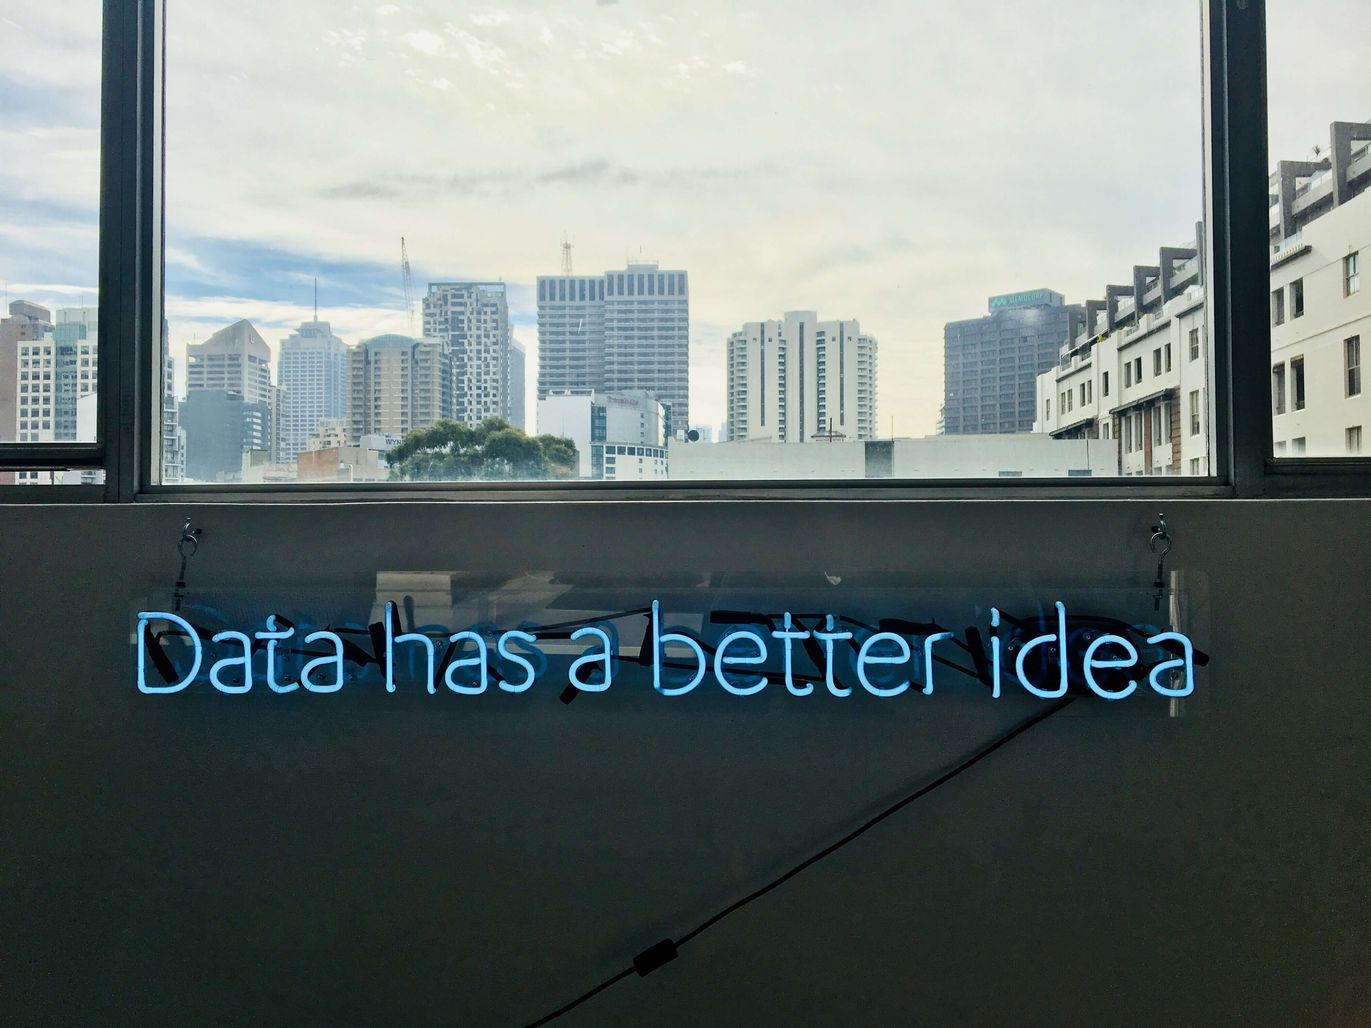 """Window to a city scene with a blue neon sign that says """"Data has a better idea"""" [Unioncrate]"""